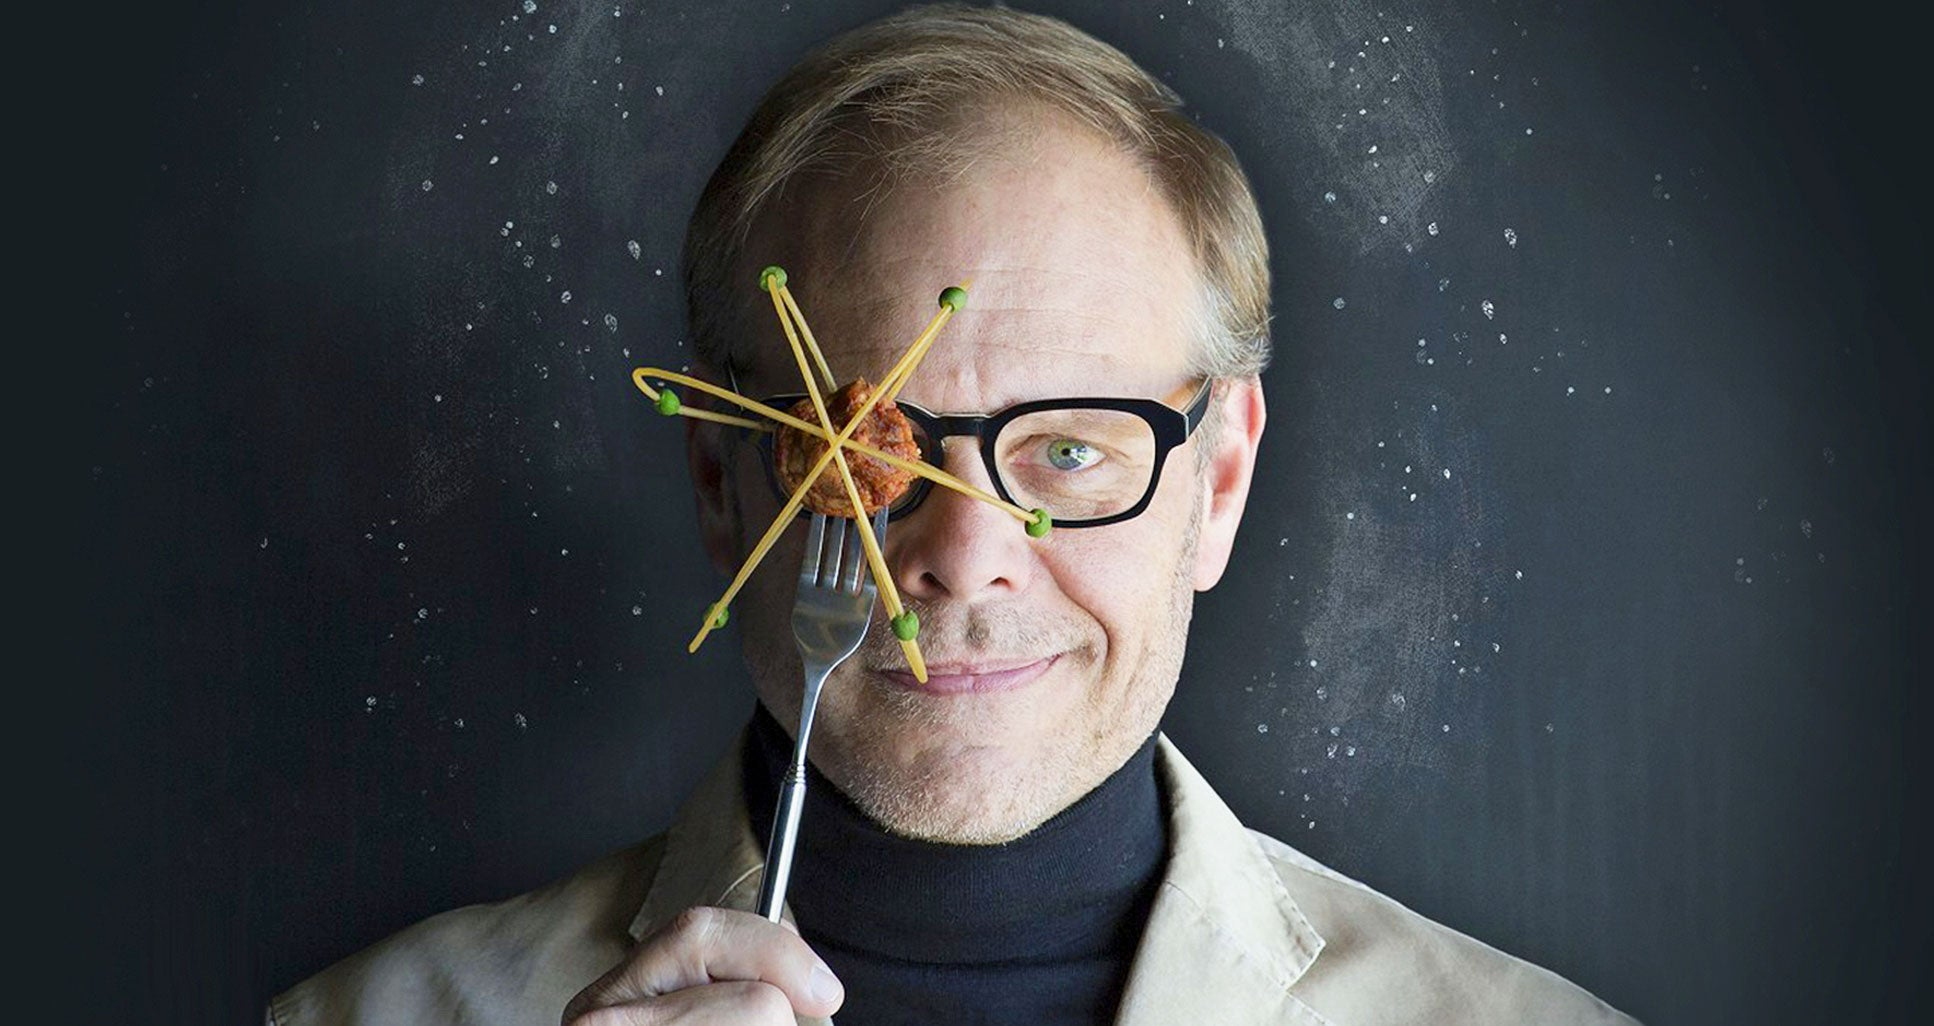 Alton-Brown-Slideshow.jpg